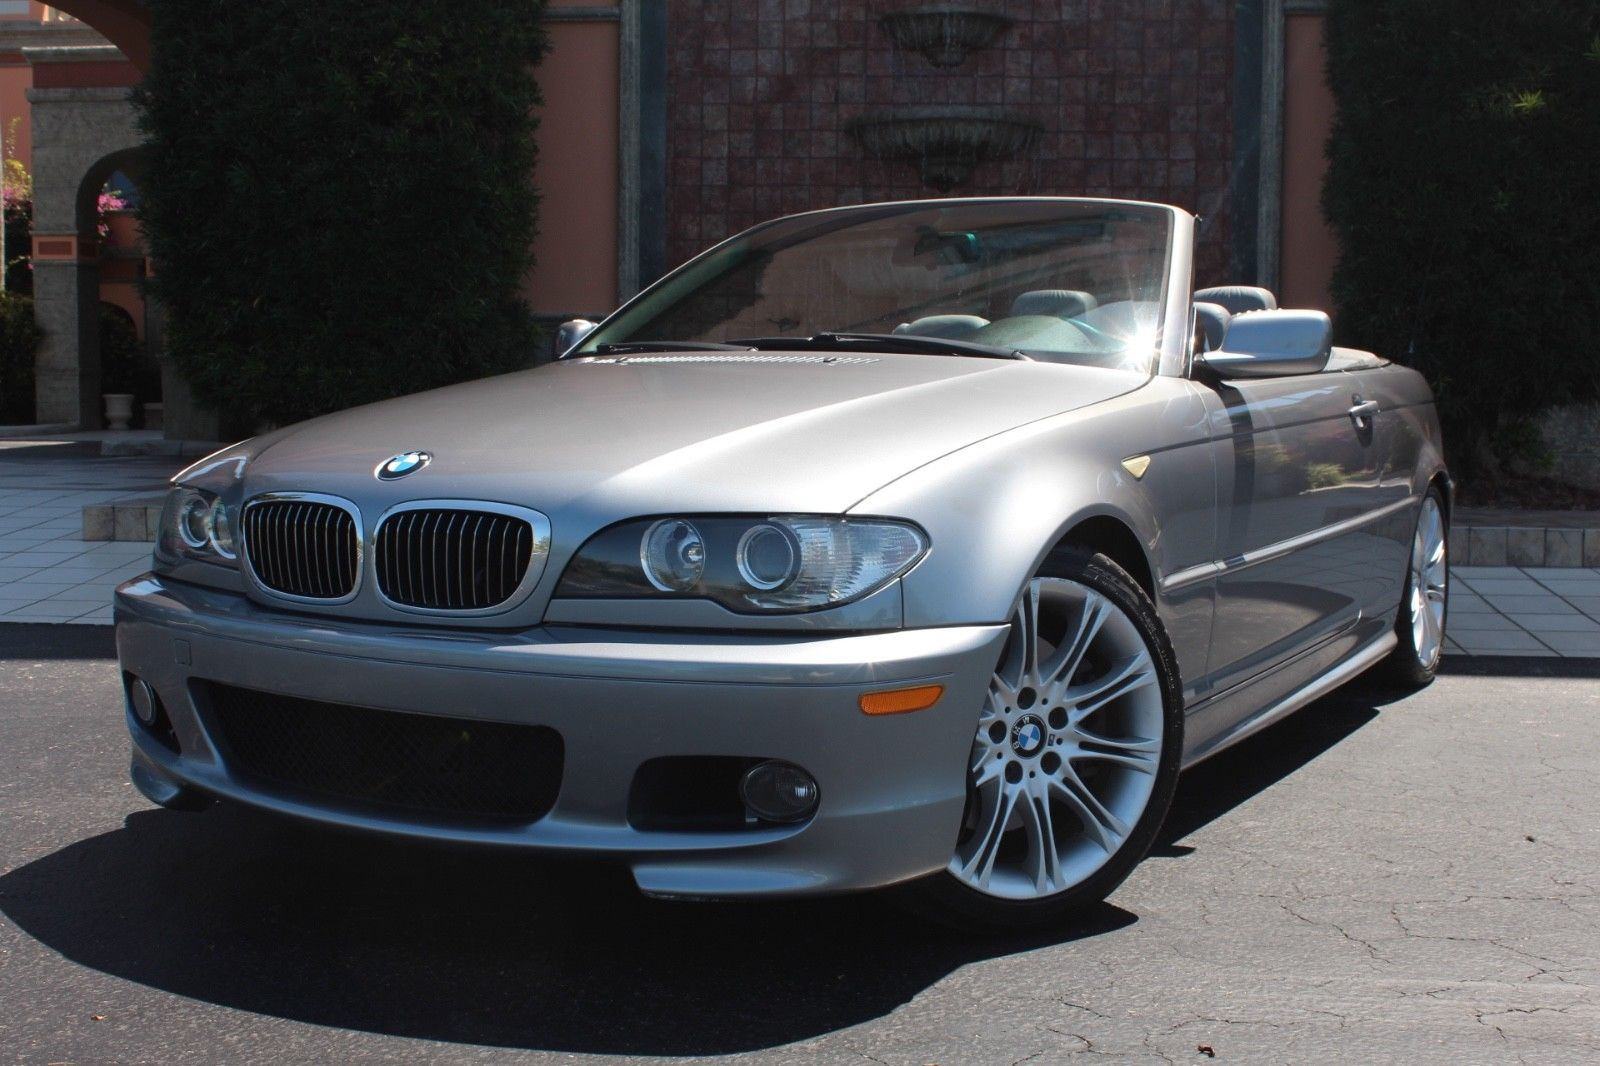 hight resolution of amazing 2004 bmw 3 series auction bmw 330ci zhp package e46 e39 m3 m5 325ci 330 328i sl 330i 352 2018 2019